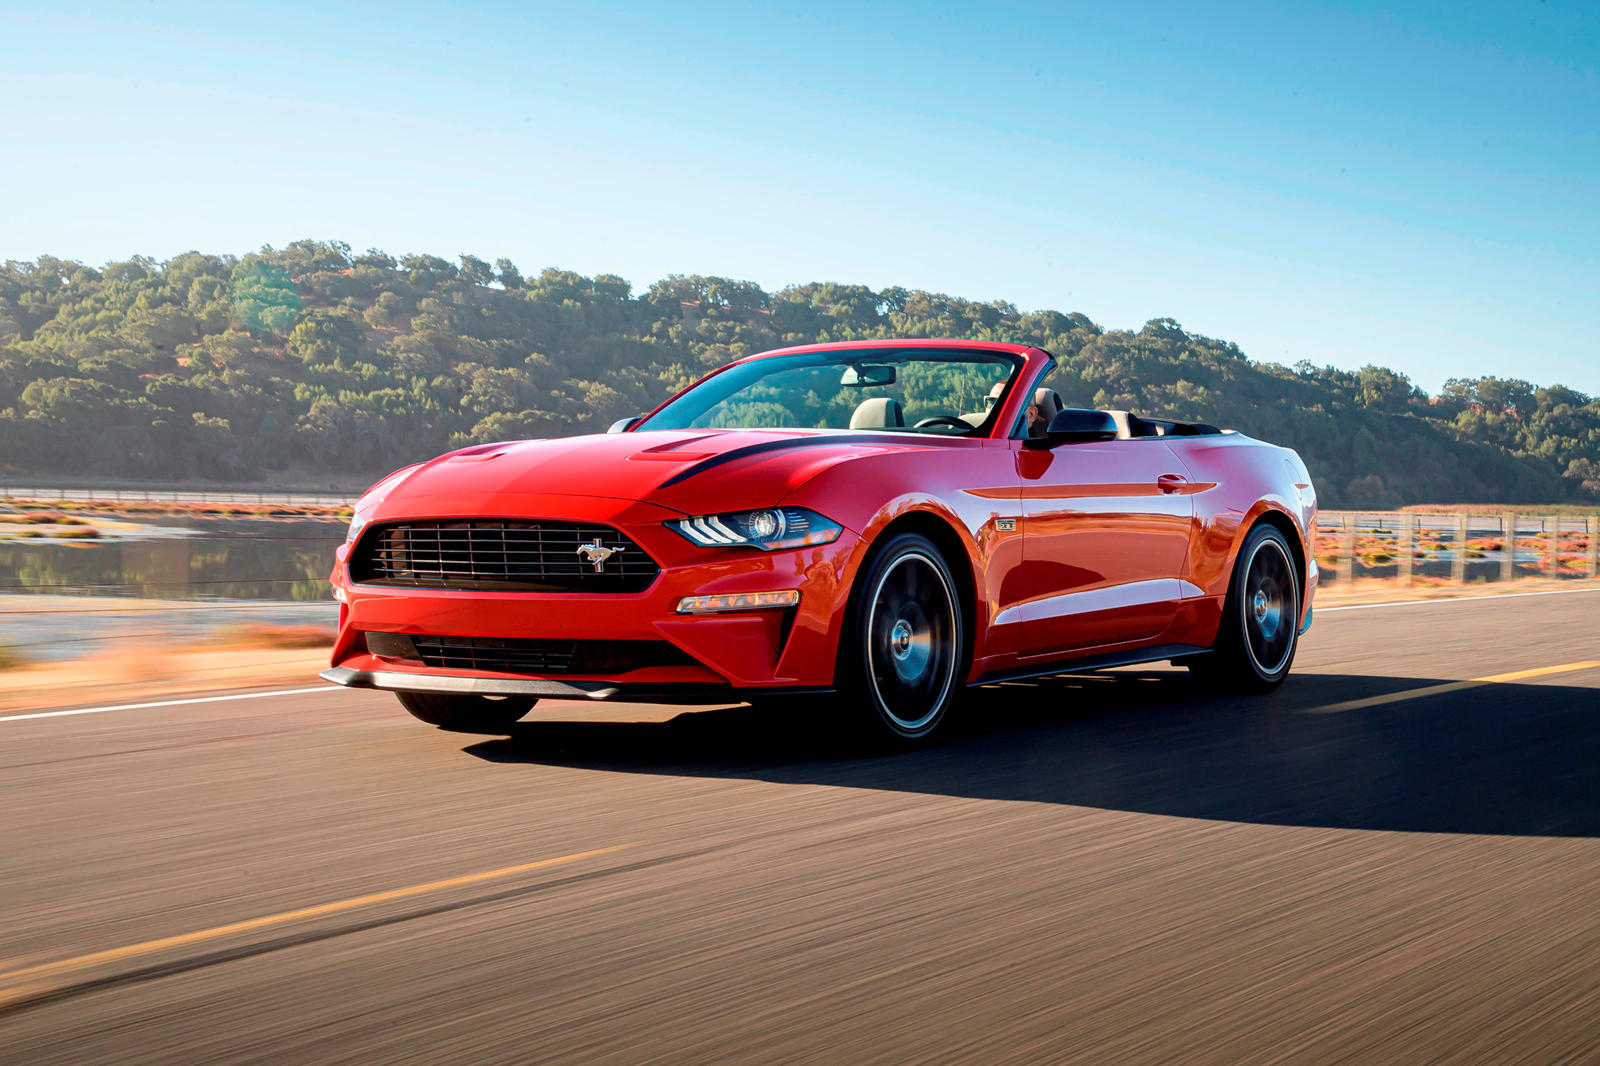 2021 Ford Mustang Convertible Review Trims Specs Price New Interior Features Exterior Design And Specifications Carbuzz